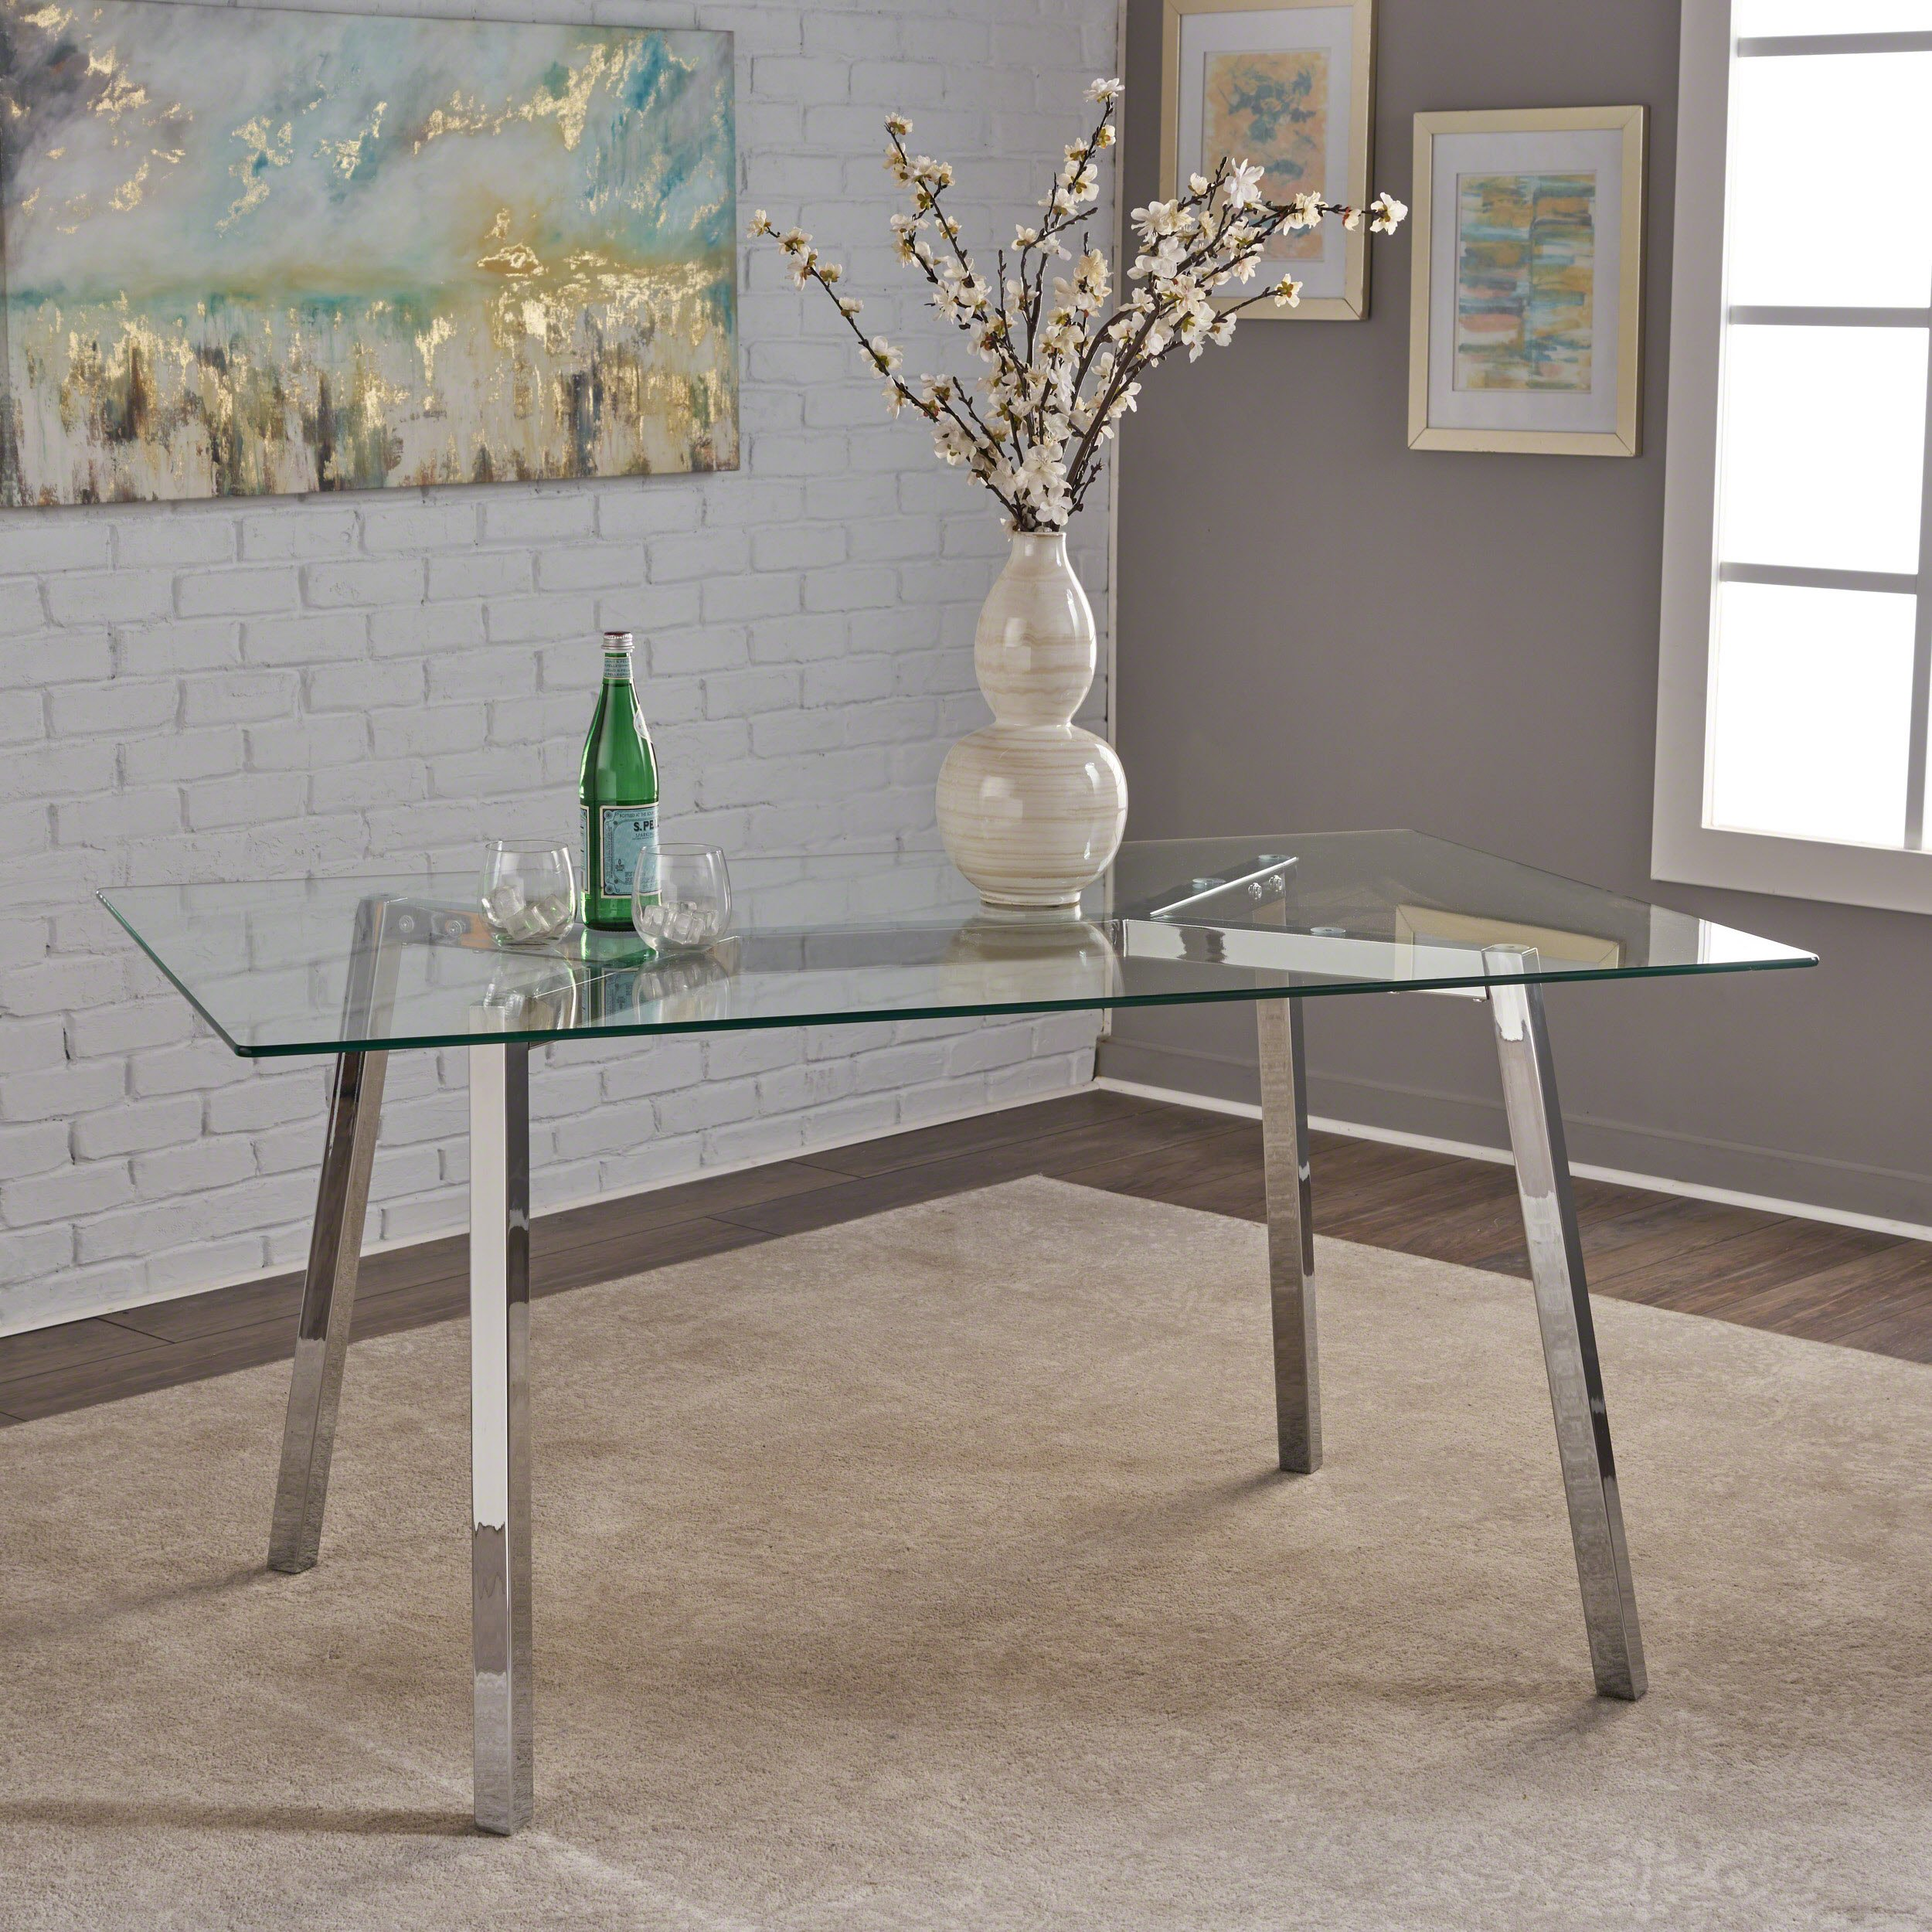 Great Deal Furniture 303715 Verna Tempered Glass Dining Table, Clear/Chrome by Great Deal Furniture